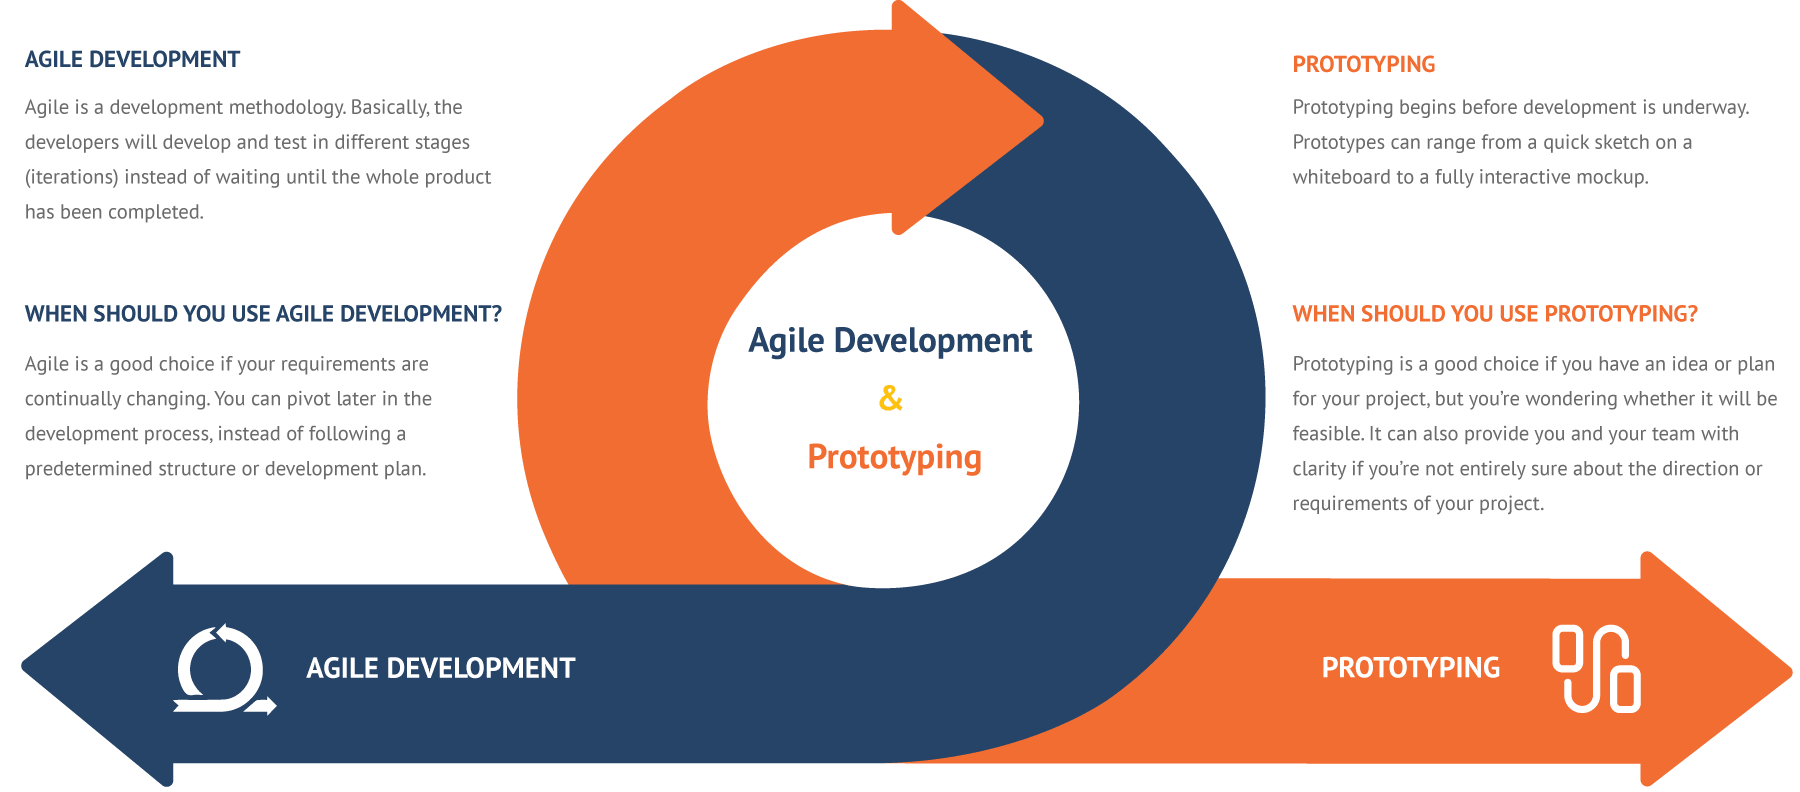 Difference between agile development and prototyping